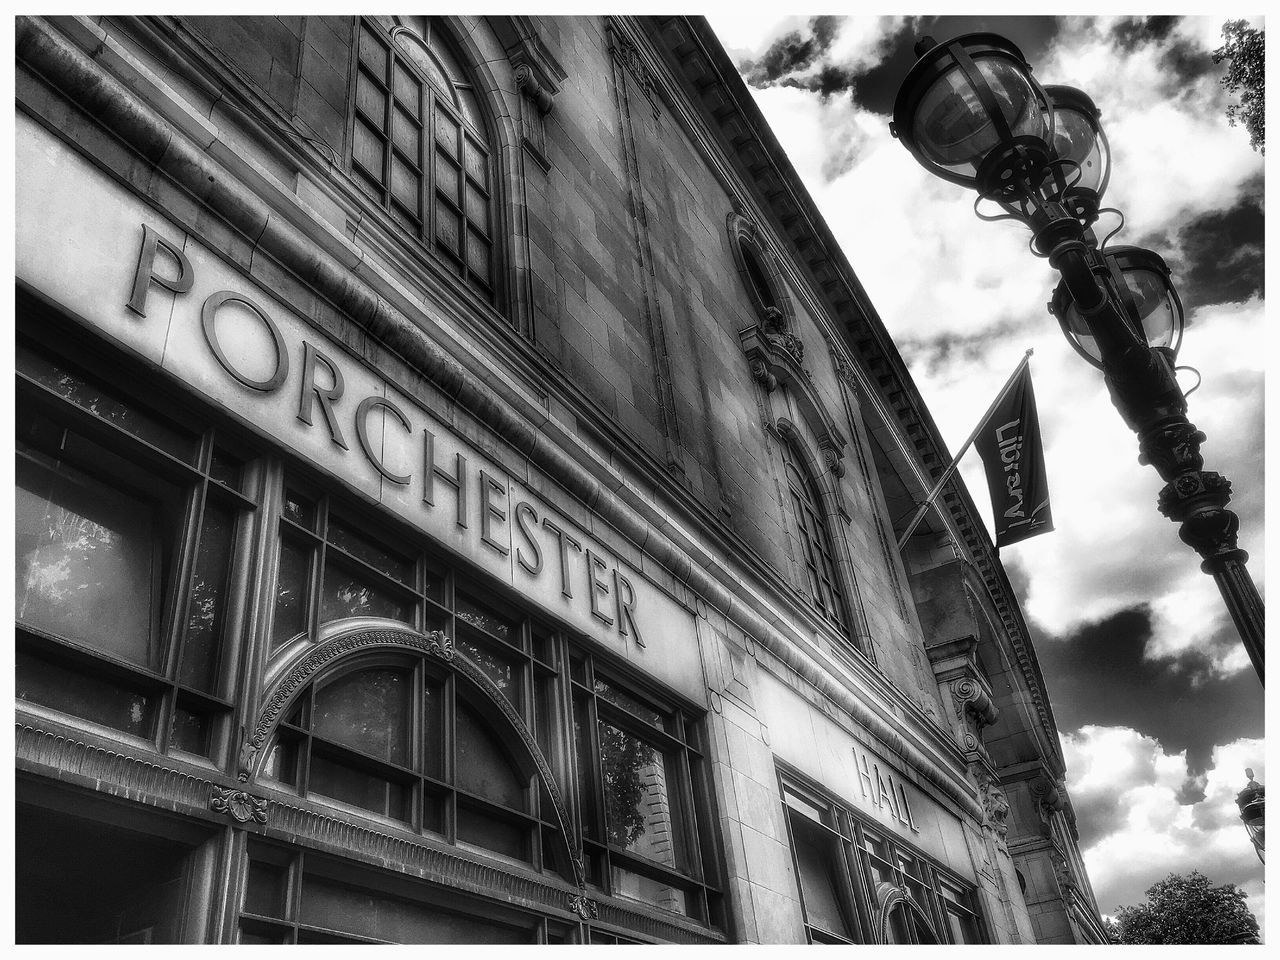 London Porchester Hall Battle Of The Cities Architecture Built Structure Building Exterior Auto Post Production Filter Low Angle View City Sky Day Outdoors Cloud - Sky City Life Famous Place Architectural Feature Architectural Column History High Section No People Façade Full Frame London Lifestyle